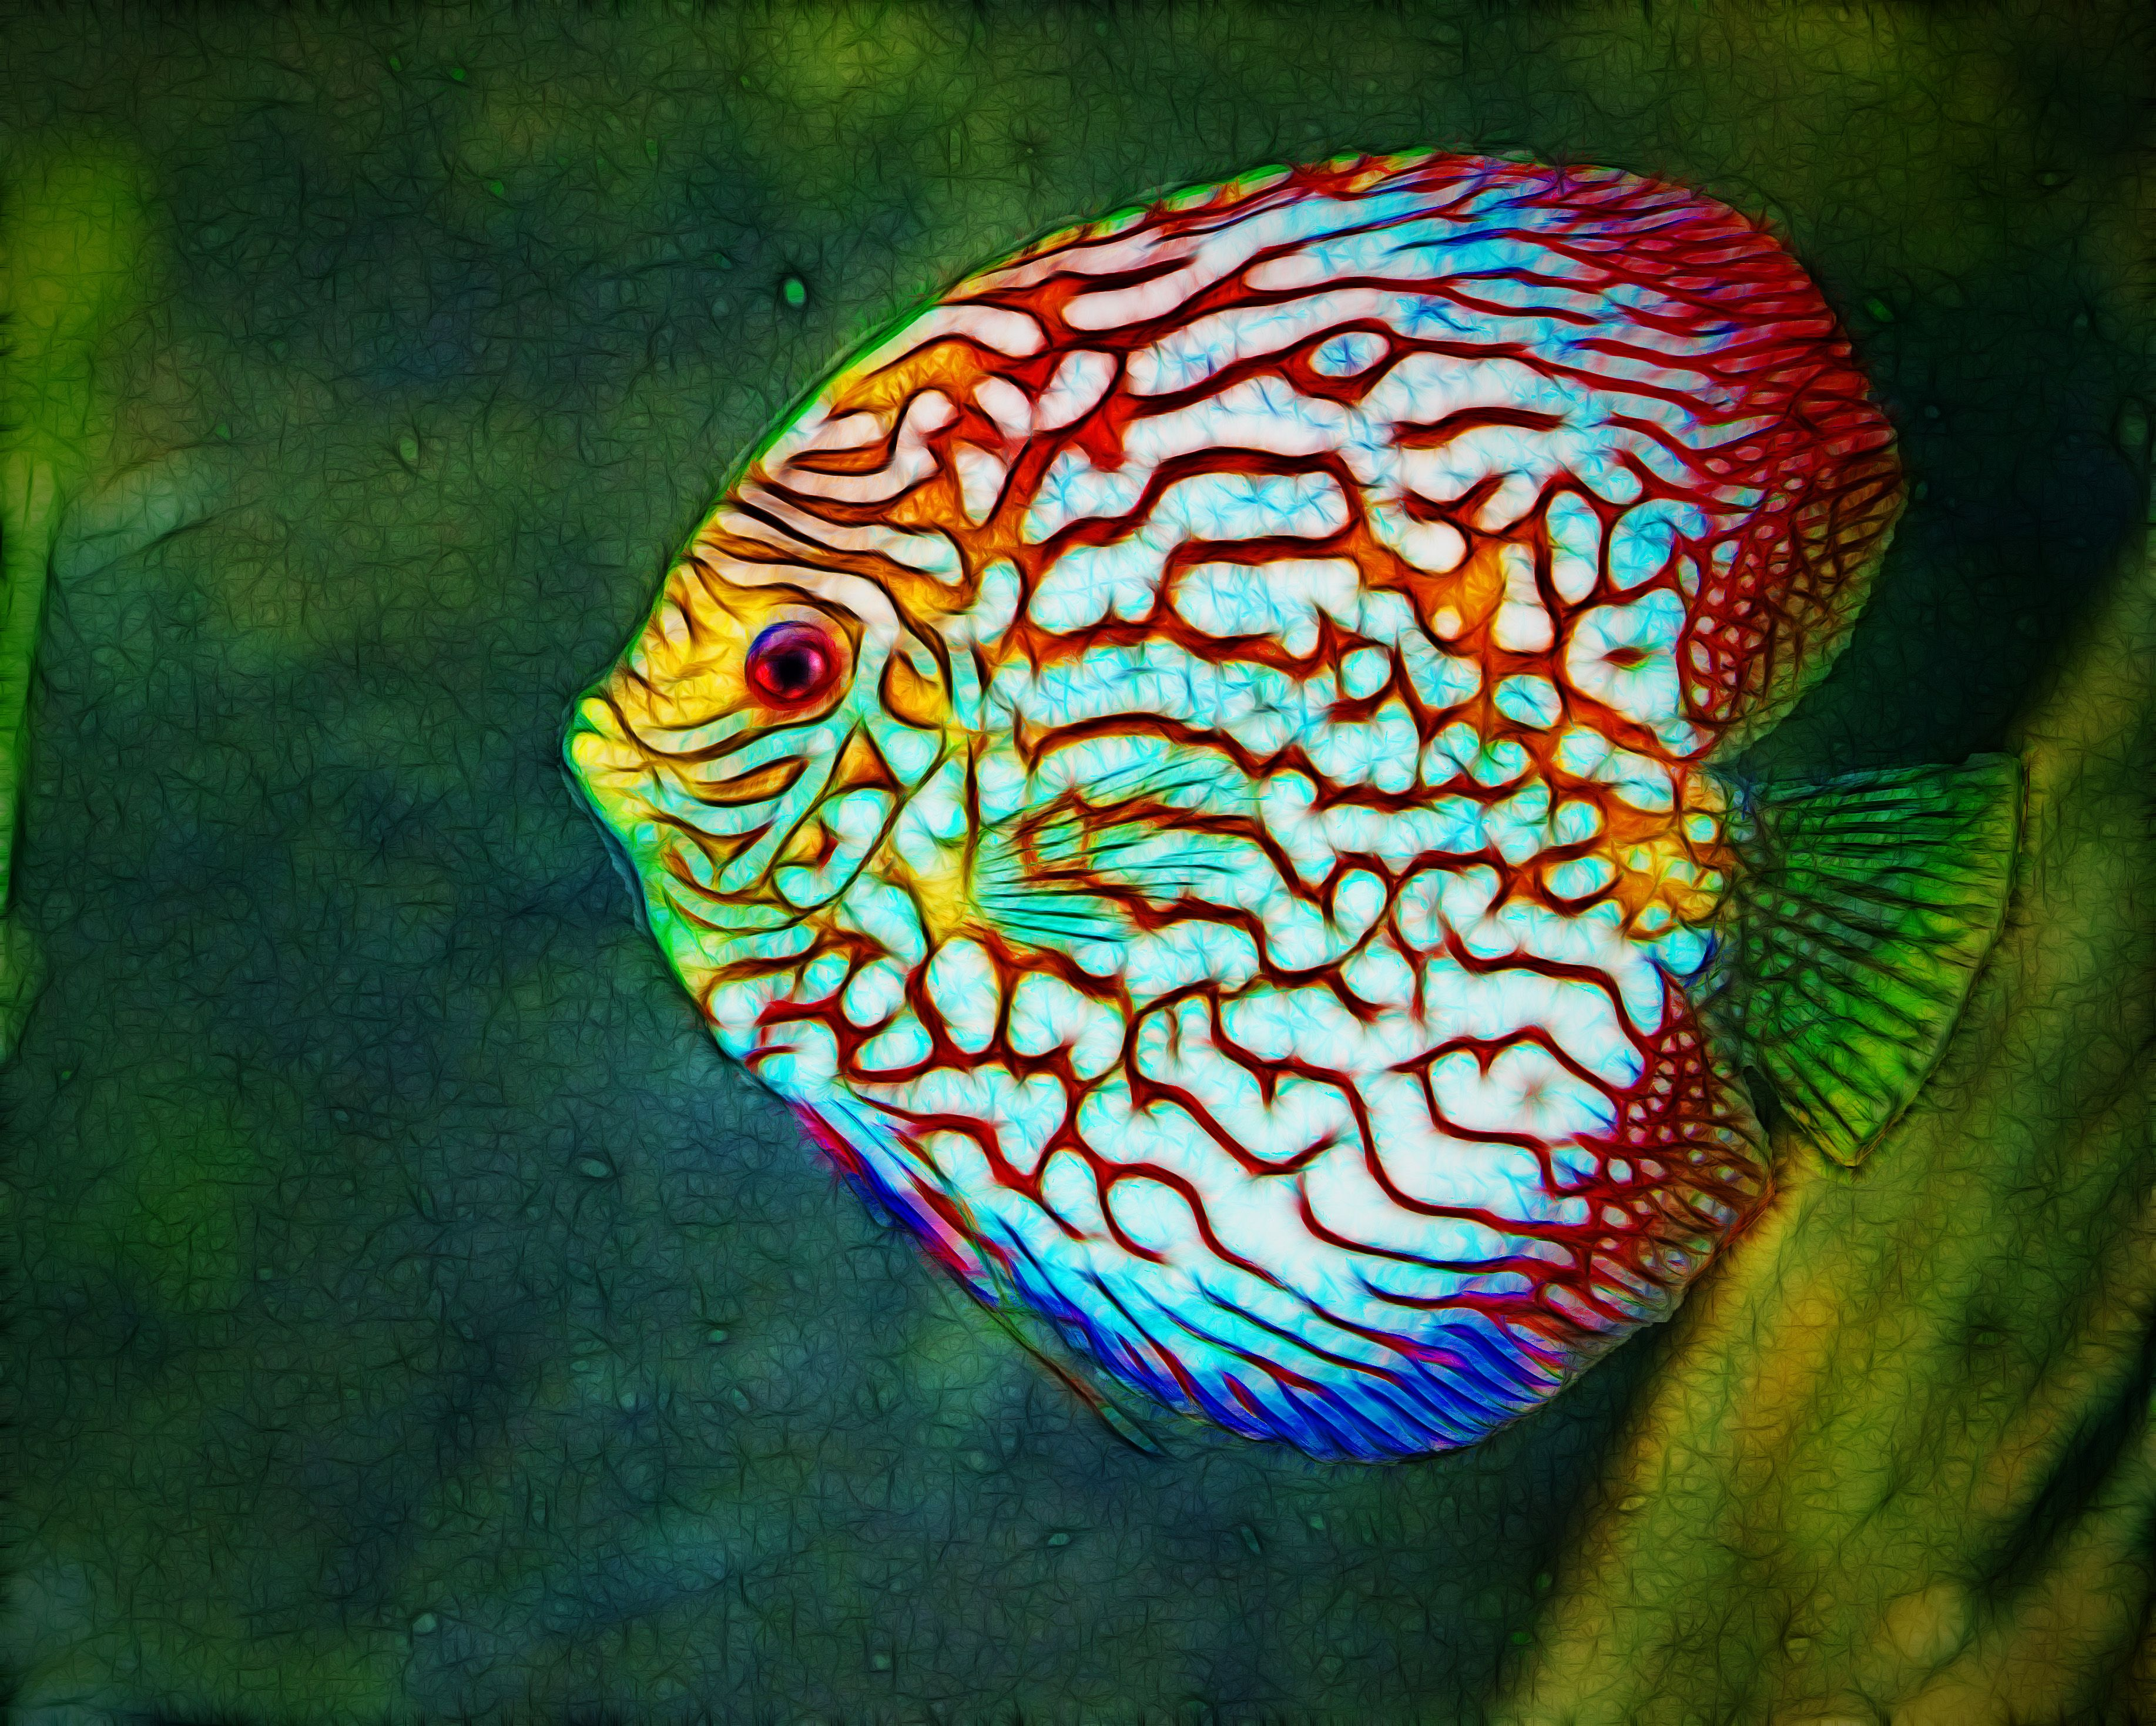 Discus kenny 39 s discus fish for sale 2017 fish tank for Cool freshwater fish for sale